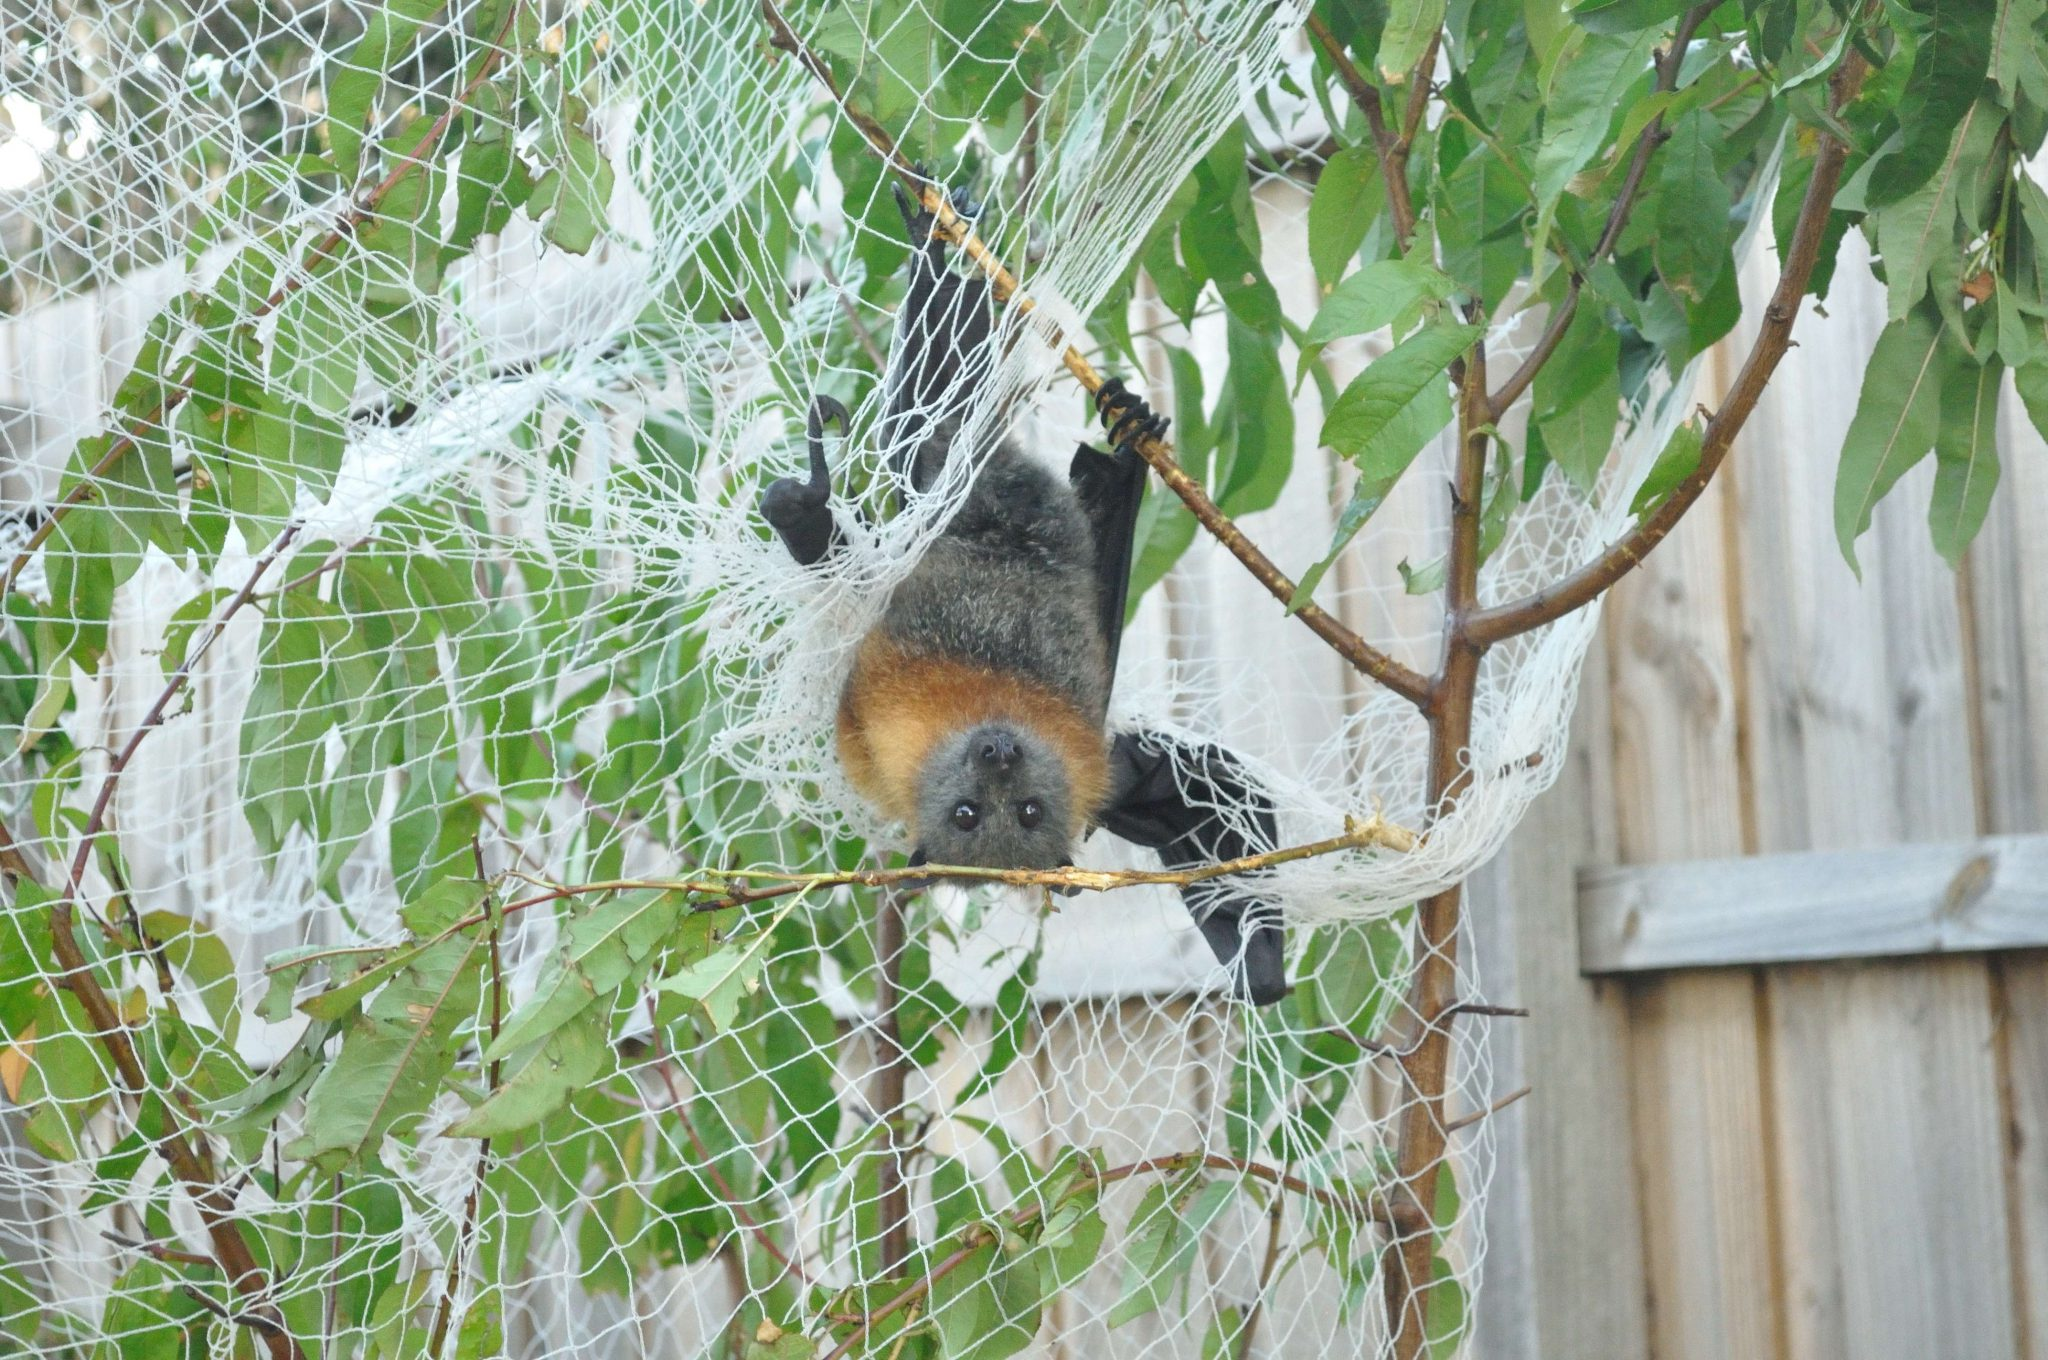 How To Prevent Wild Animals From Getting Caught In Fruit Netting